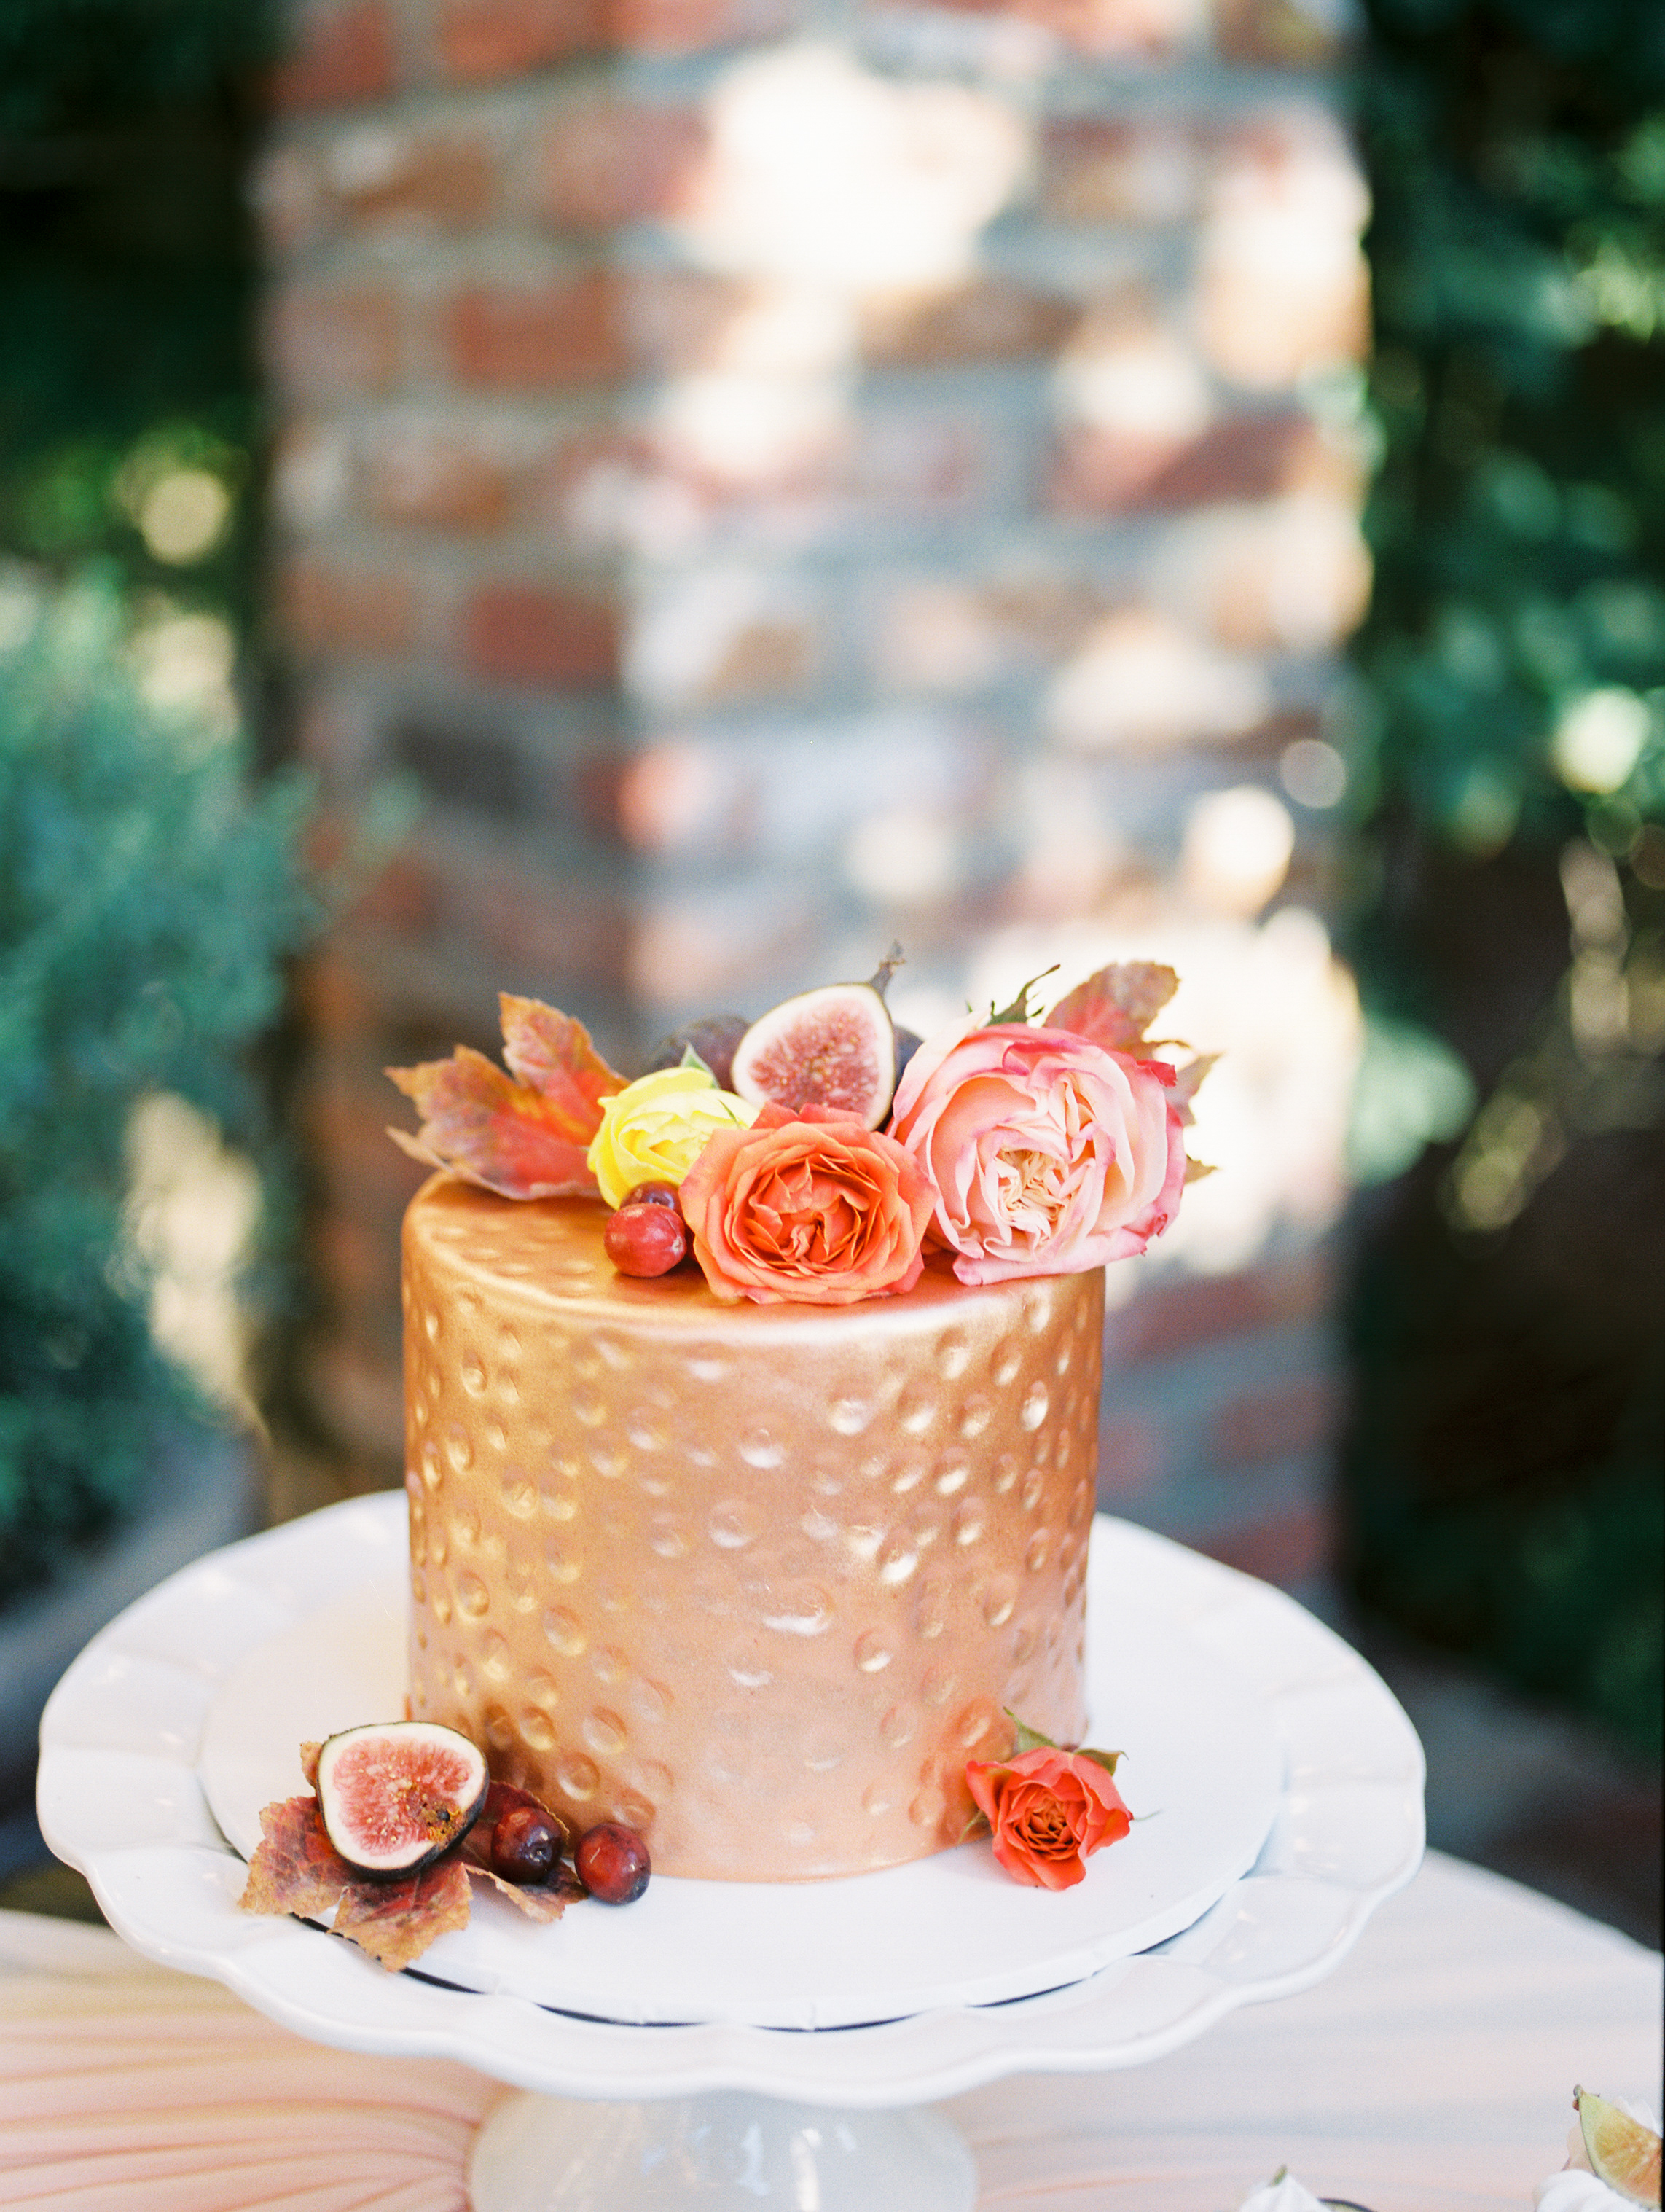 Fall Wedding 2019 Pretty Wedding cake design idea